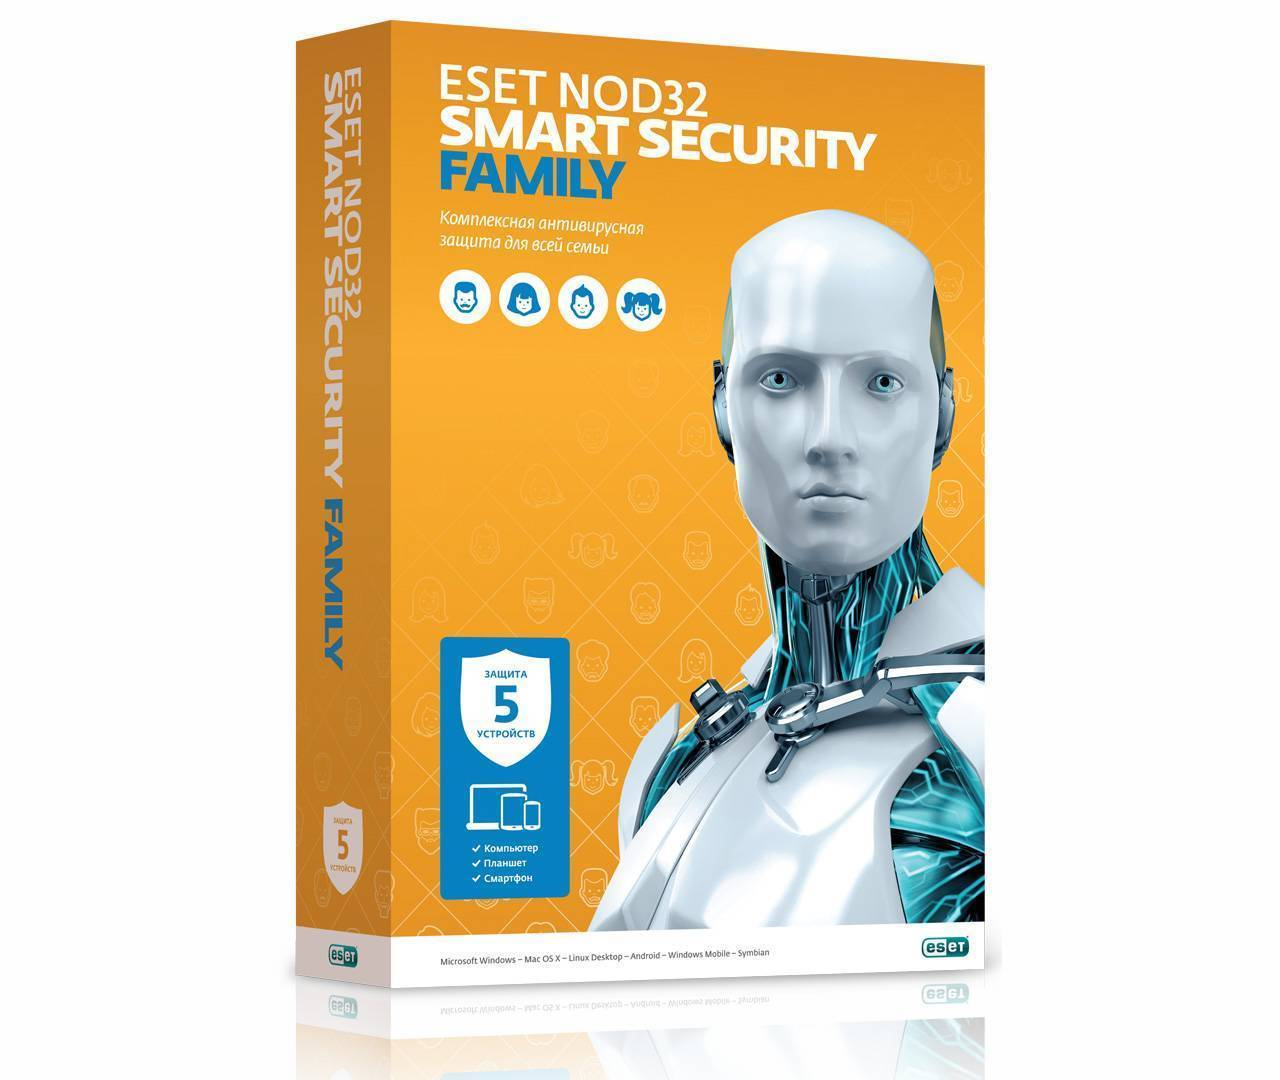 ESET NOD32 SMART SECURITY FAMILY - 5 dev 1 year REGFREE